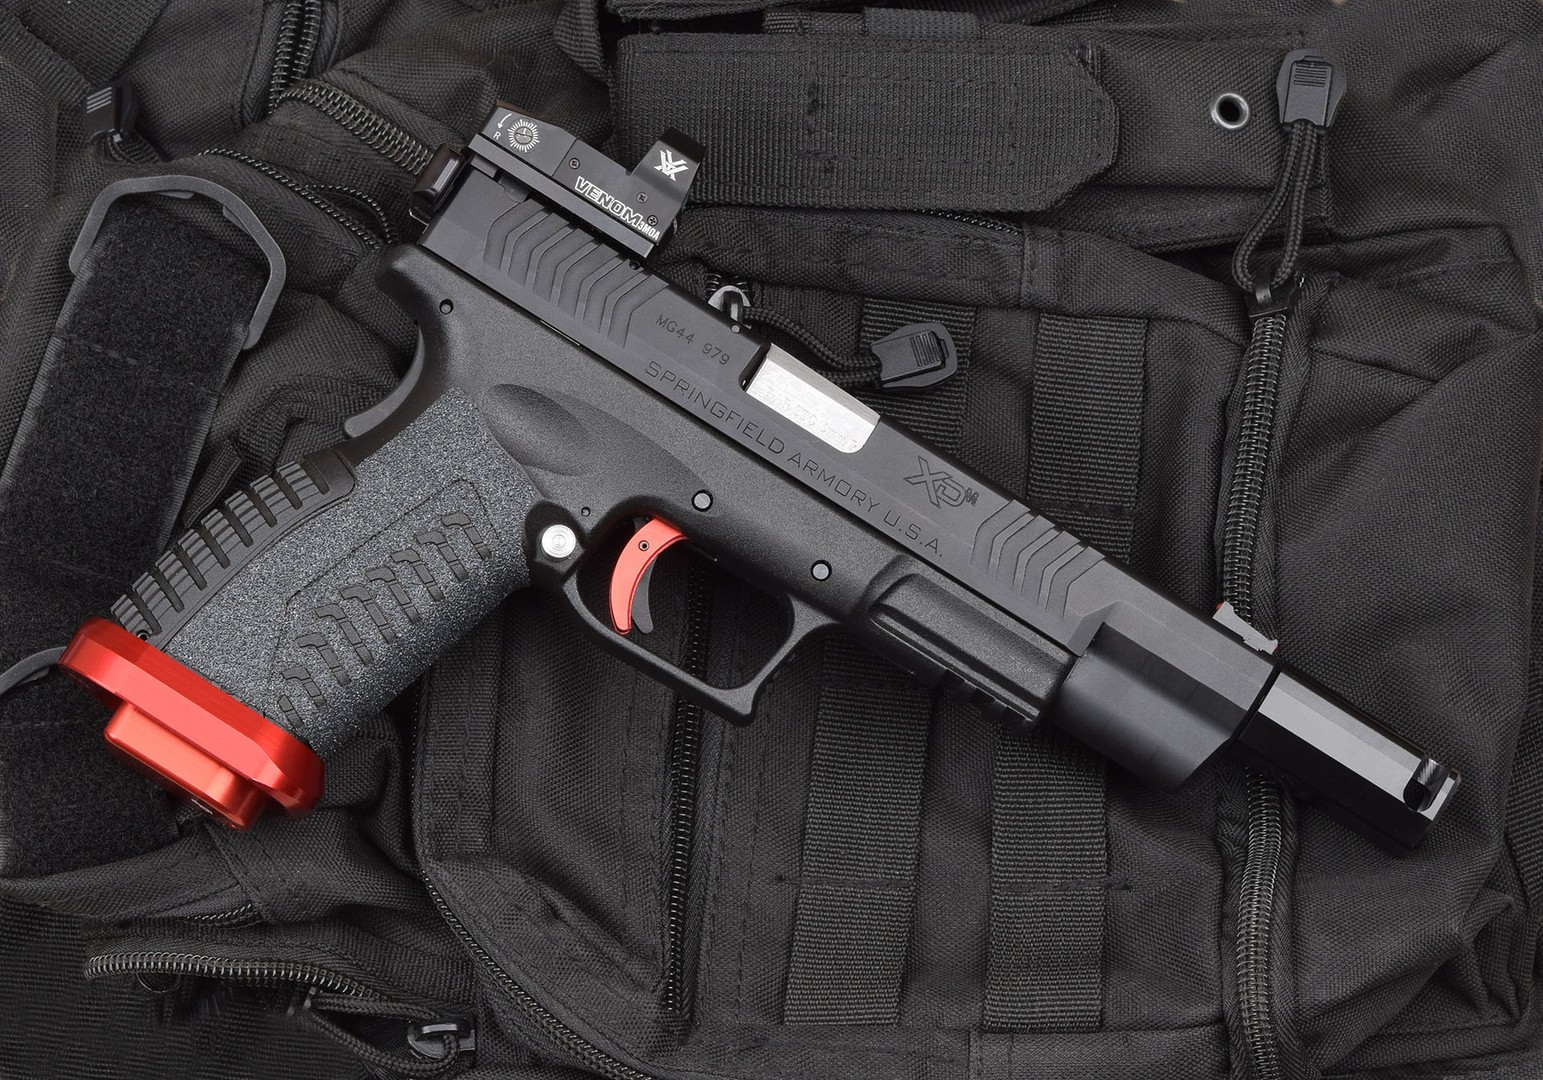 CARVER Professional  XDM Cmore Combo-9MM